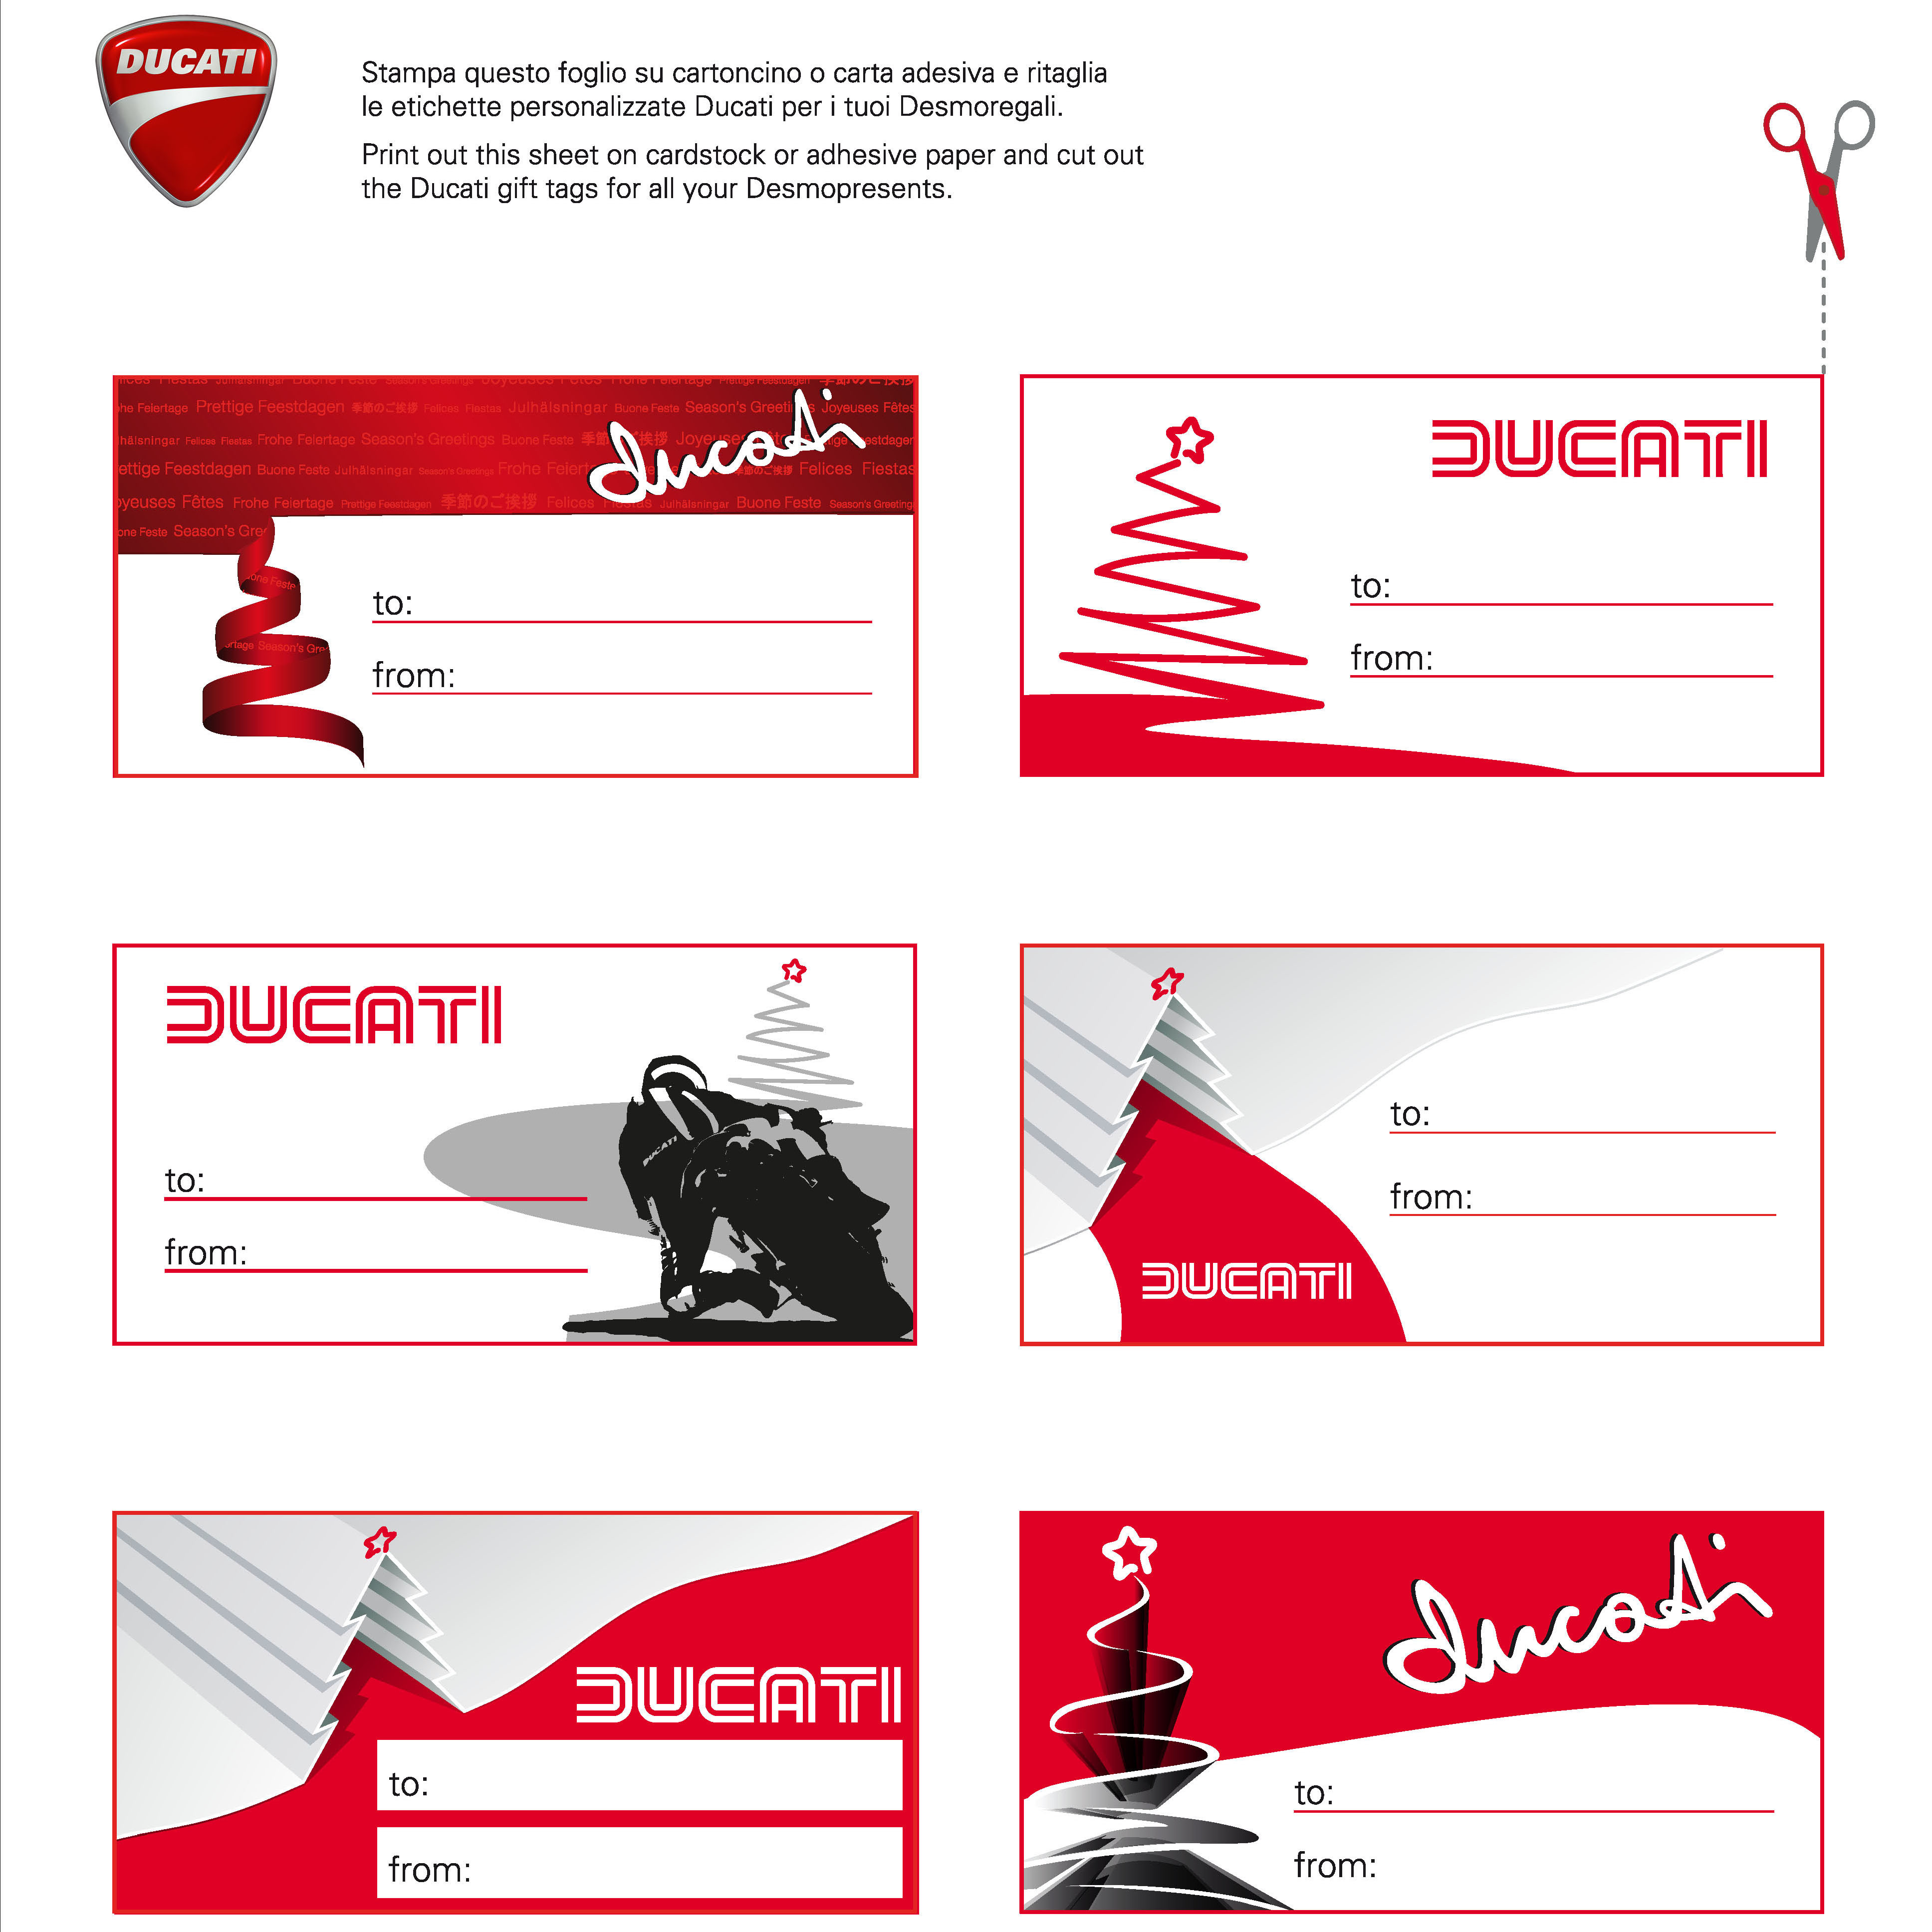 Ducati gift tags and decorations to download